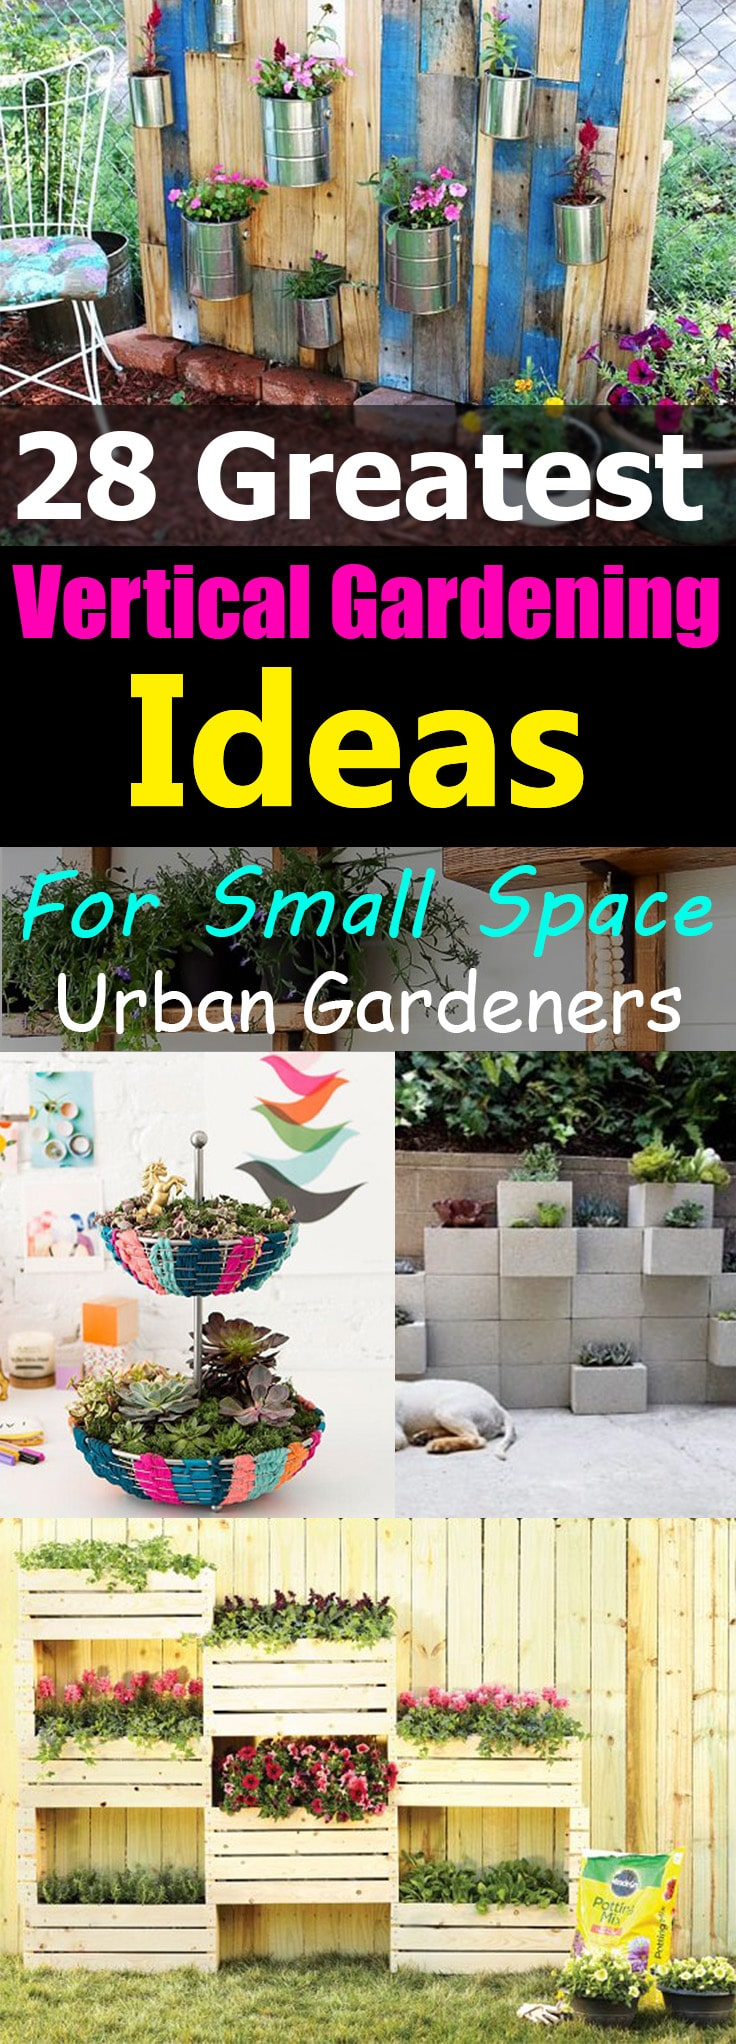 28 greatest vertical gardening ideas for small space urban gardeners little to no place for gardening learn how to create a lot of planting space workwithnaturefo